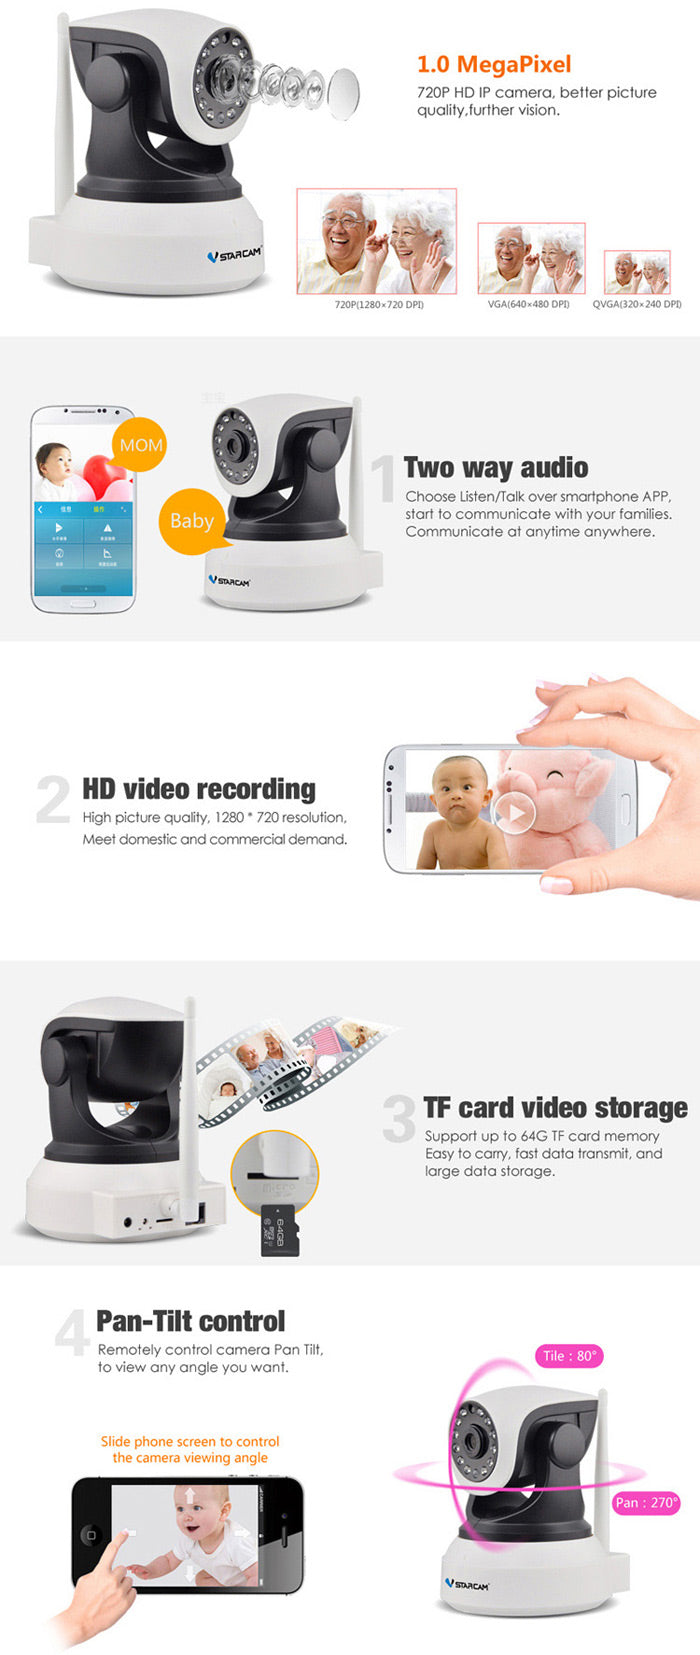 VStarcam C7824WIP HD 720P 1.0MP Plug-and-play IP WiFi Camera ONVIF2.0 Multi Stream for Home Security